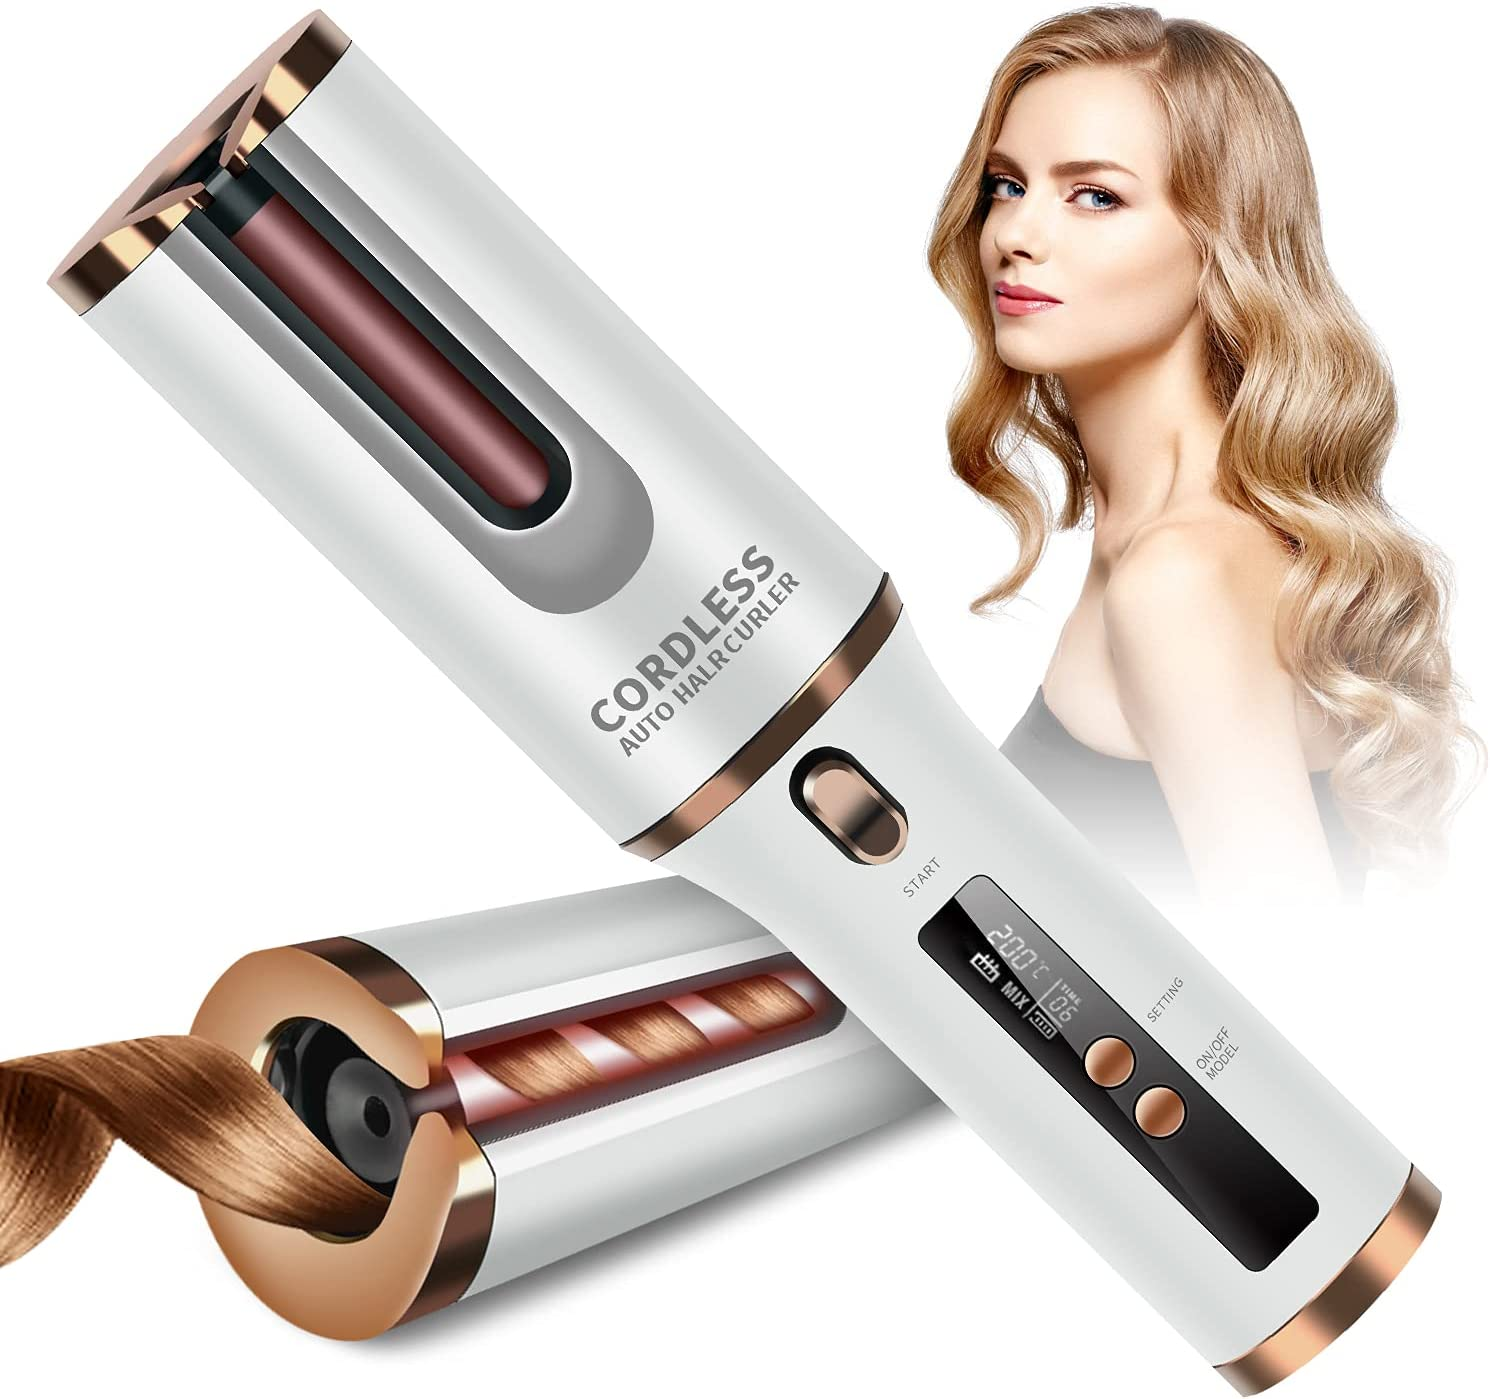 Special price for a limited time Cordless Auto Curler Branded goods HANMEI Portable Curling 60 with Wand Minute